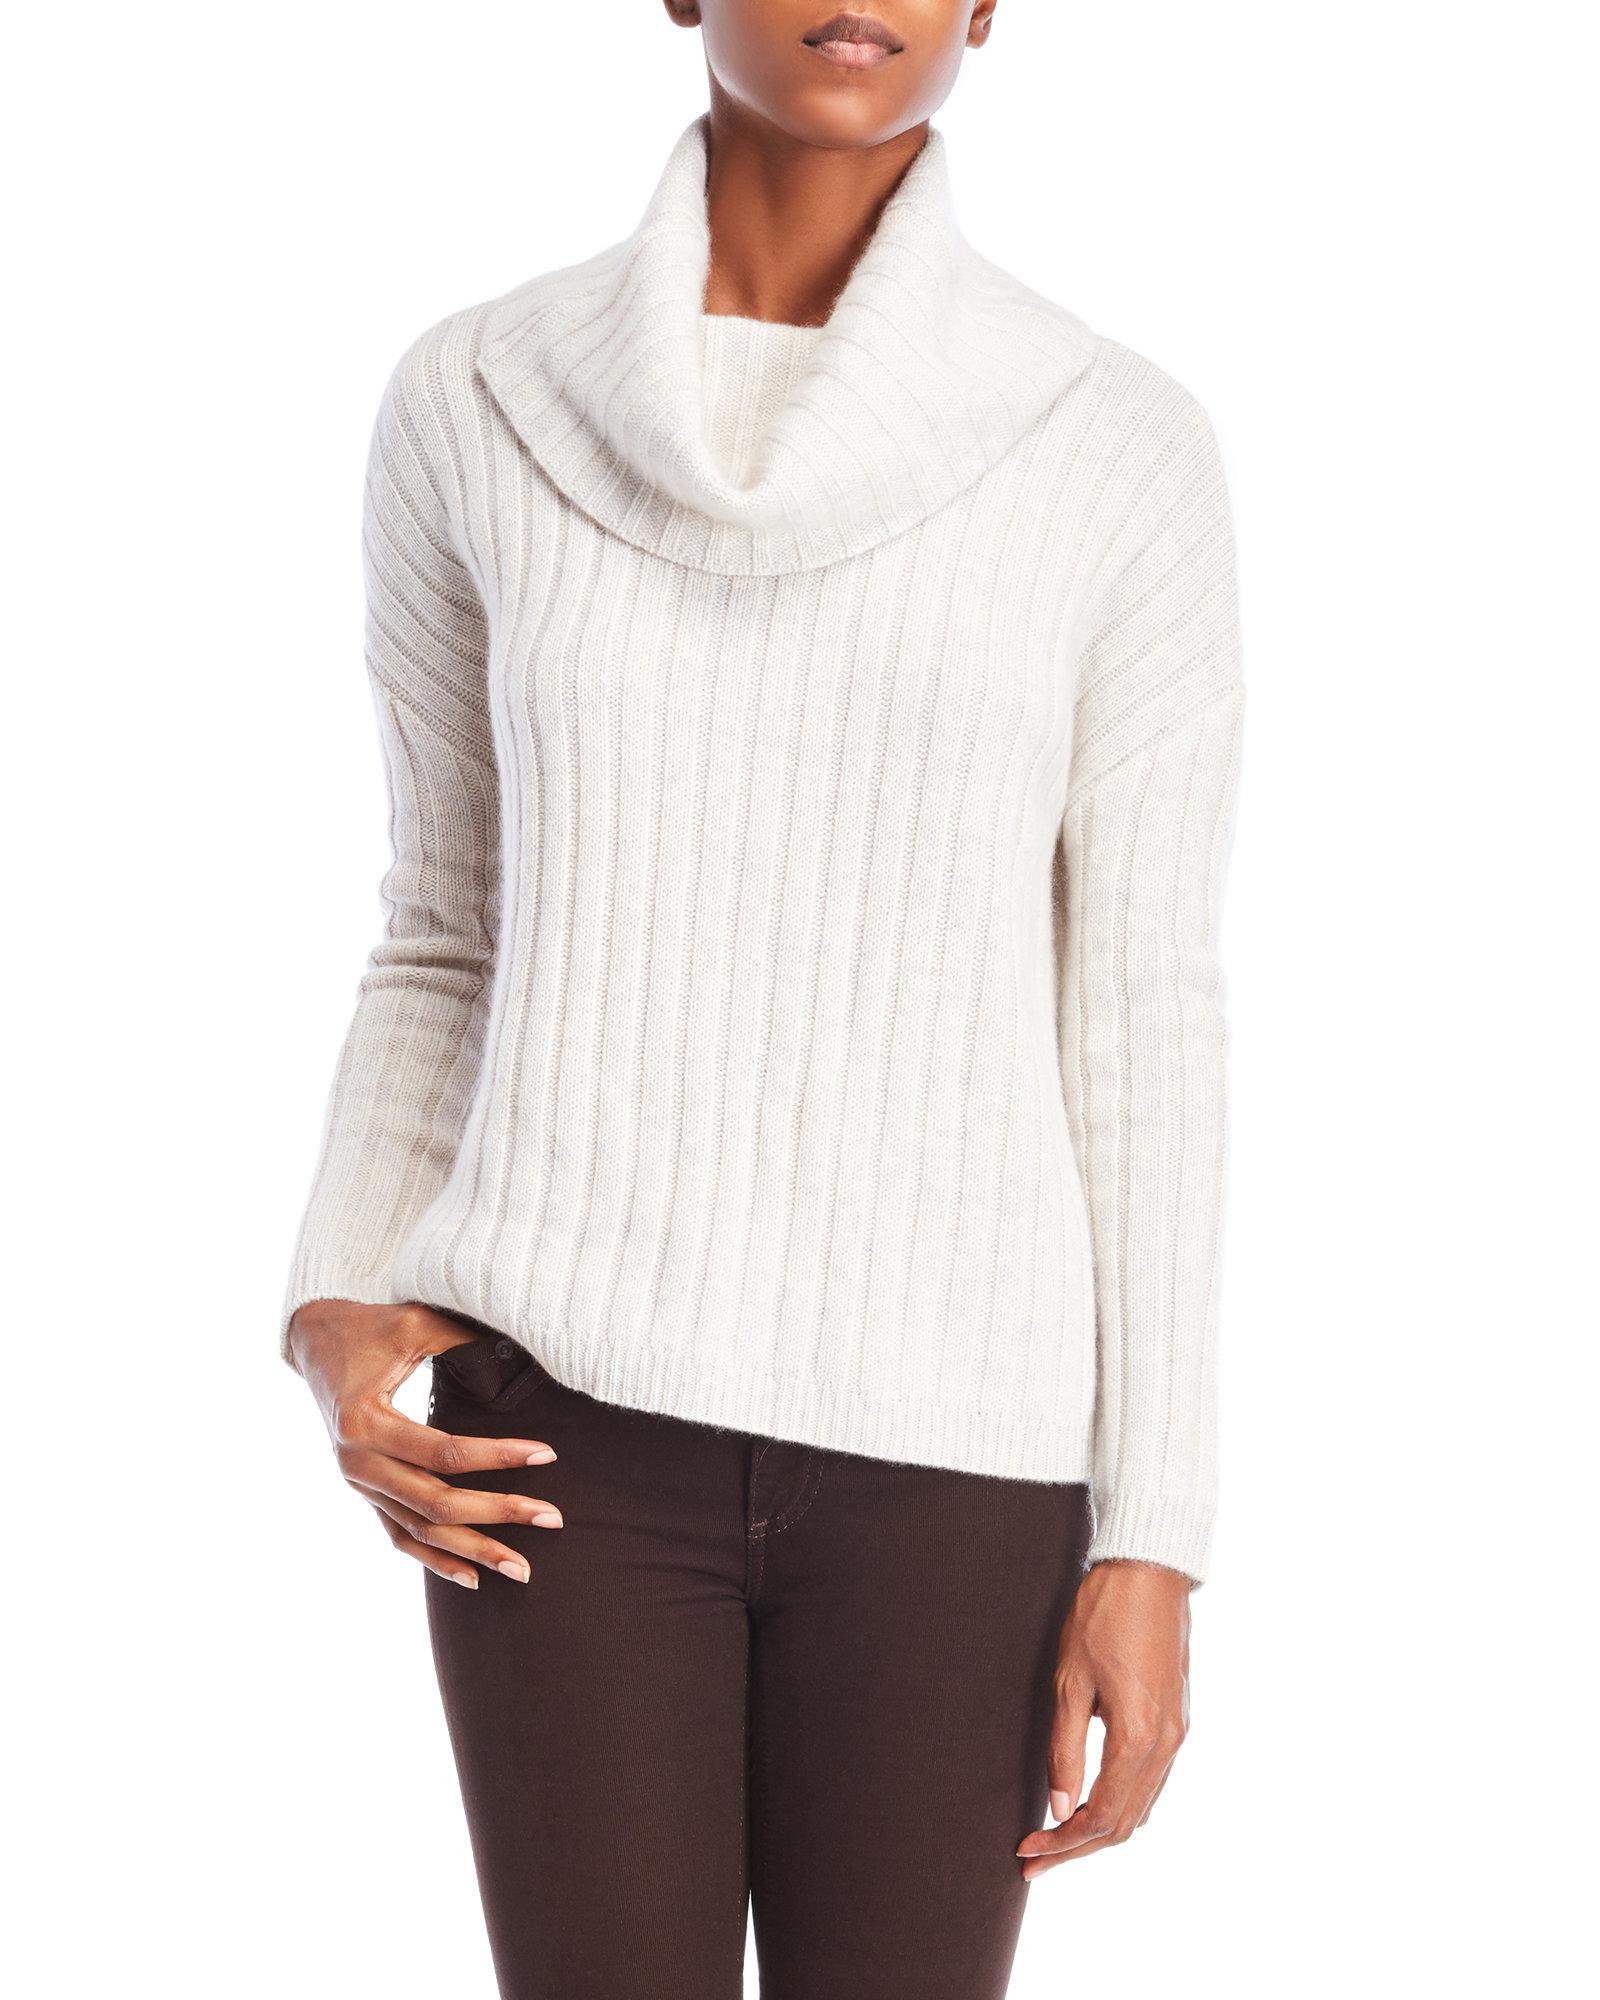 Ply cashmere Cowl Neck Ribbed Sweater in White | Lyst